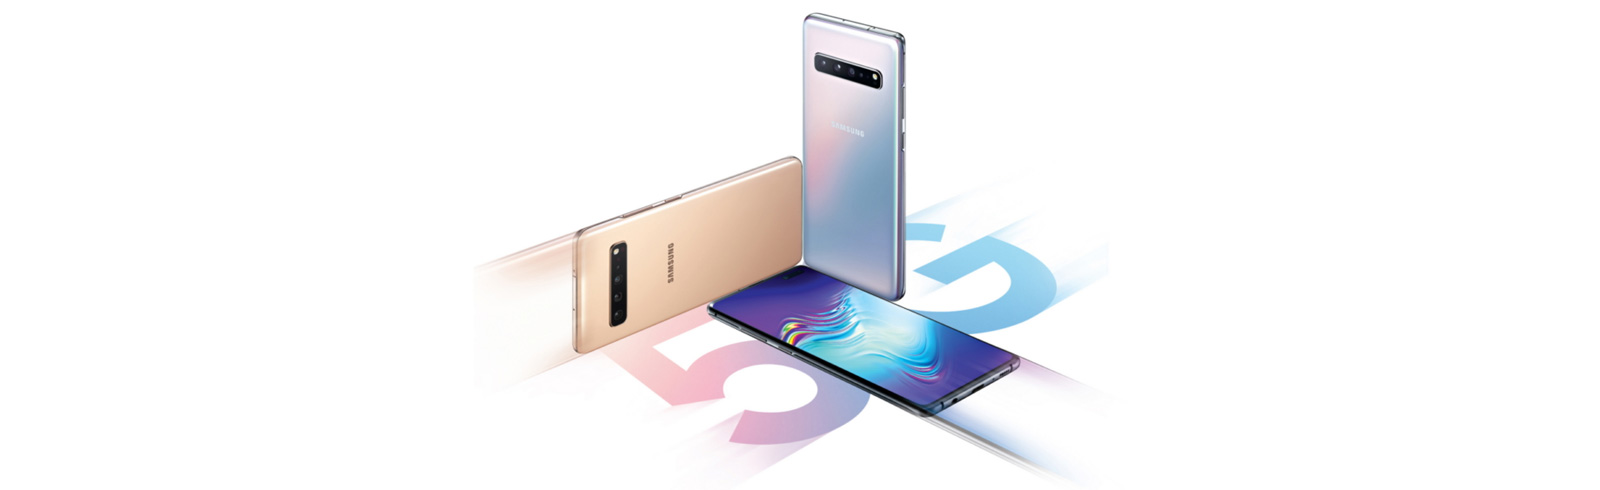 Samsung will launch the Galaxy S10 5G in South Korea on April 5th